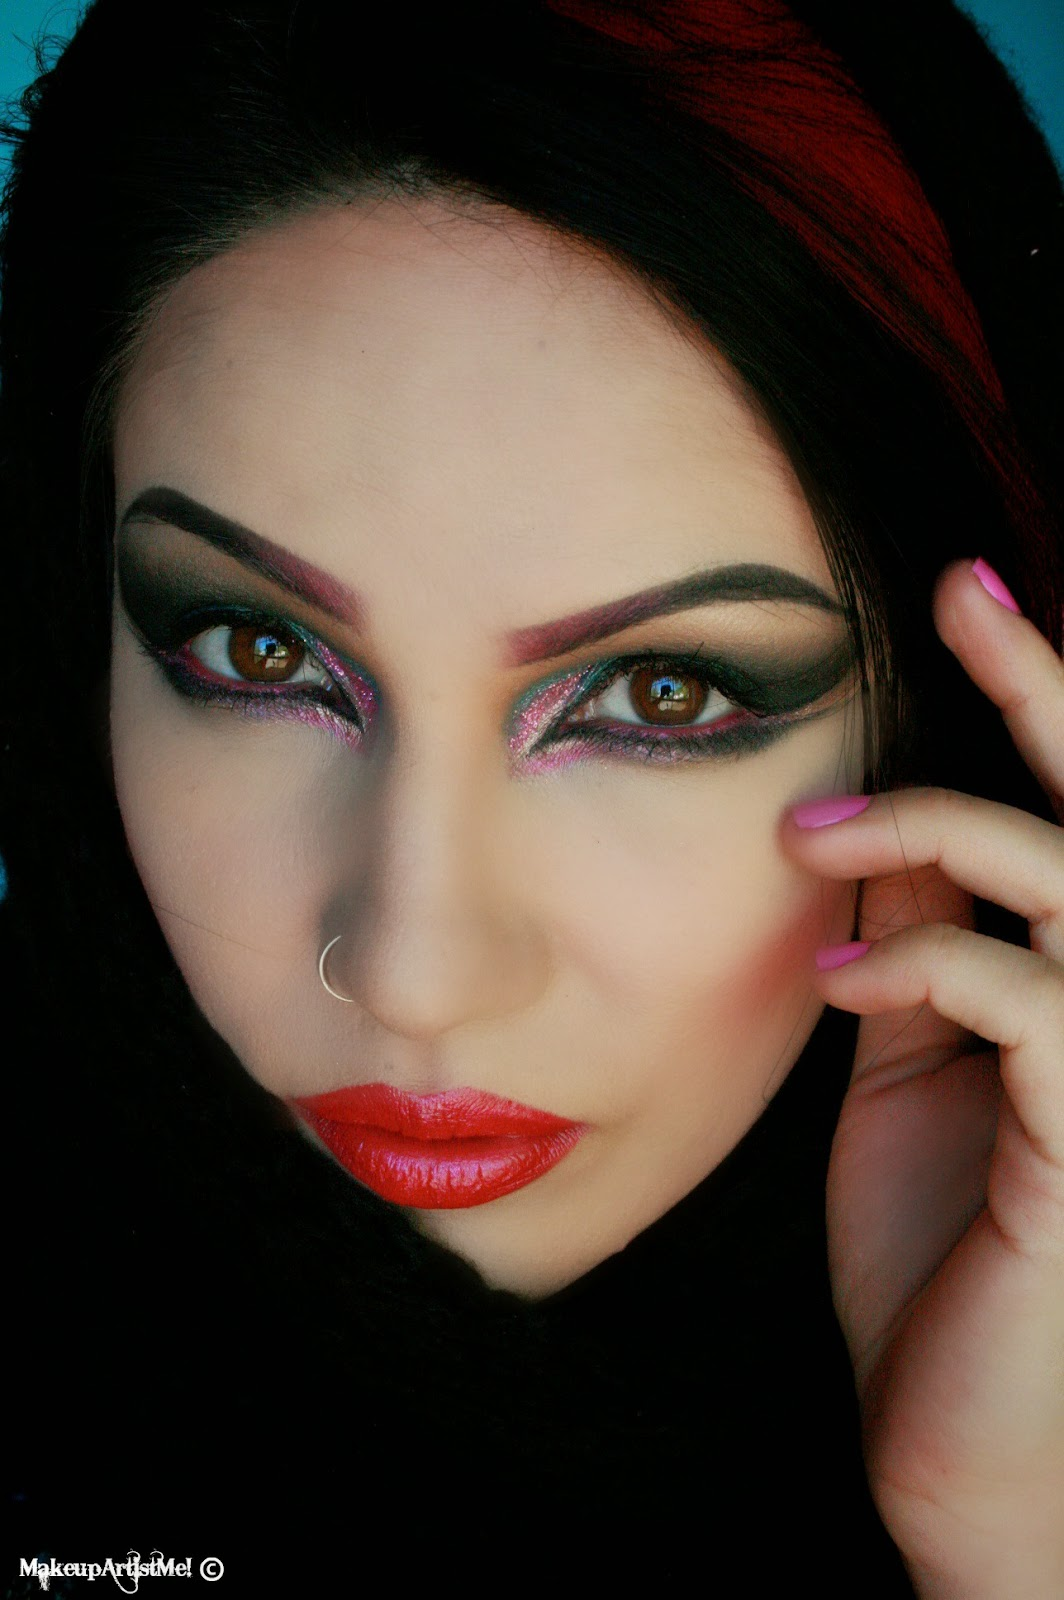 Make-up Artist Me!: Arabic Drama - Makeup Tutorial